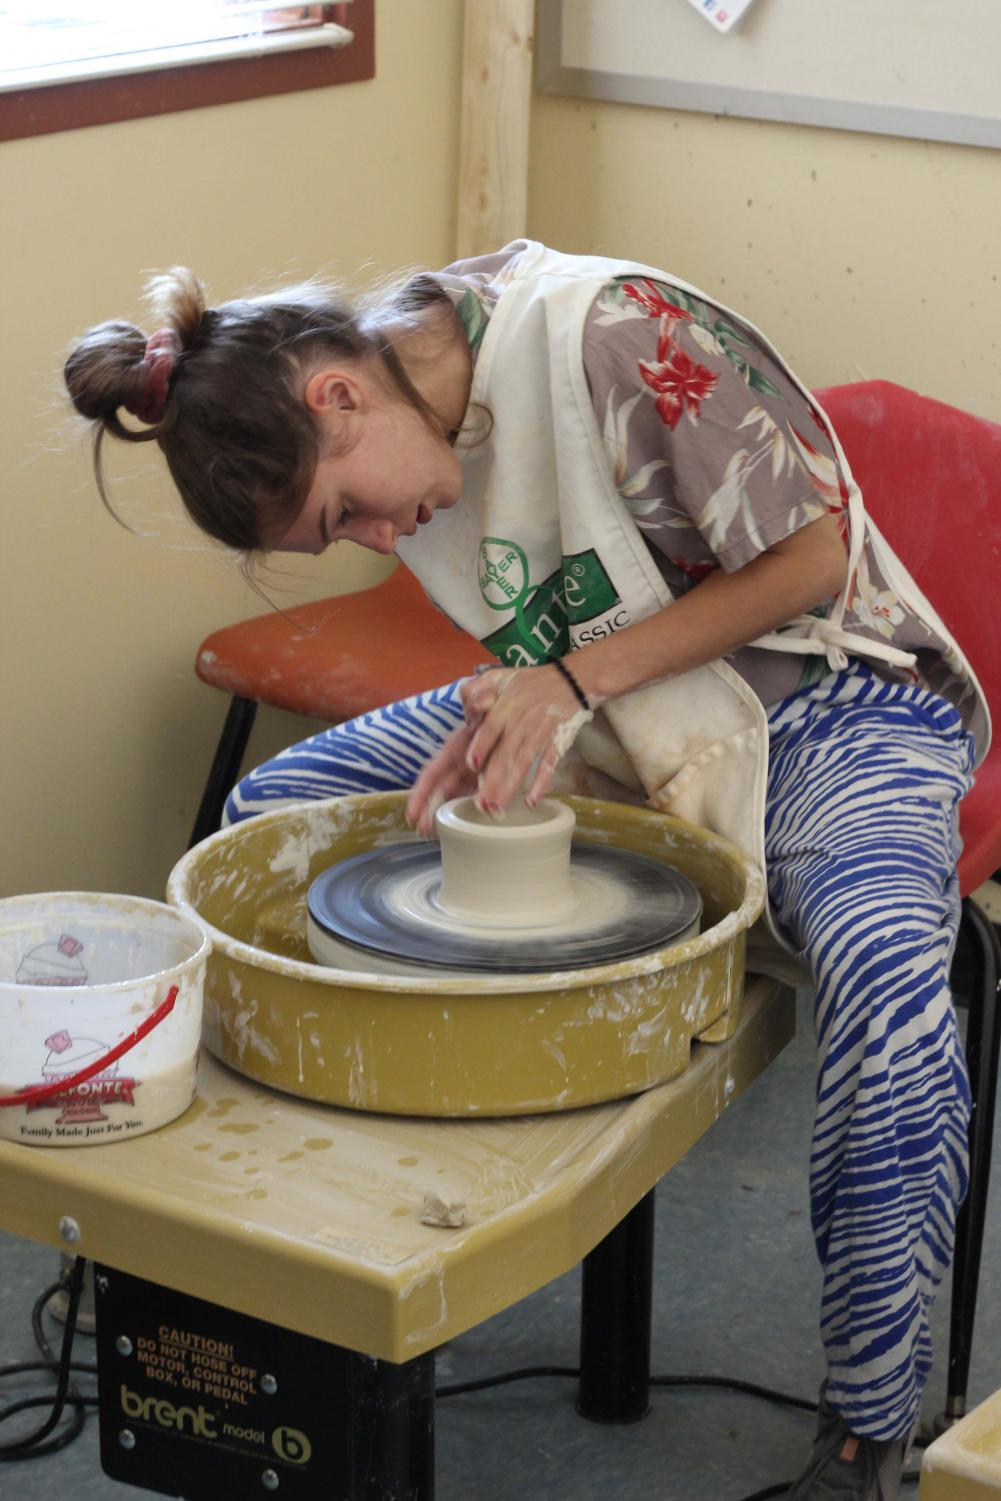 Senior+Lauren+Mead+works+on+her+project+in+her+ceramics+class+Sept.+9.+Underneath+her+apron%2C+Mead+is+dressed+in+a+combination+of+various+patterns+for+Pattern+Day%2C+the+first+day+of+Spirit+Week.+